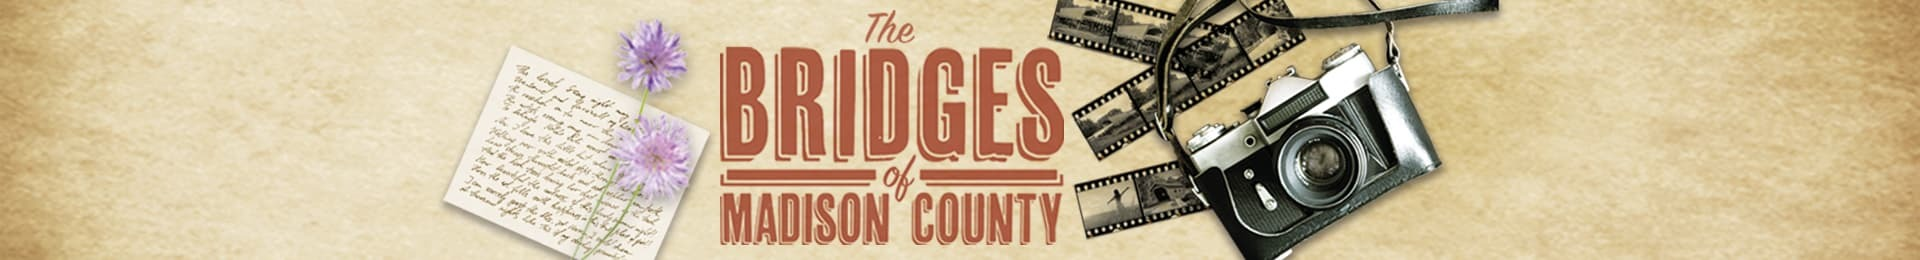 The Bridges of Madison County banner image